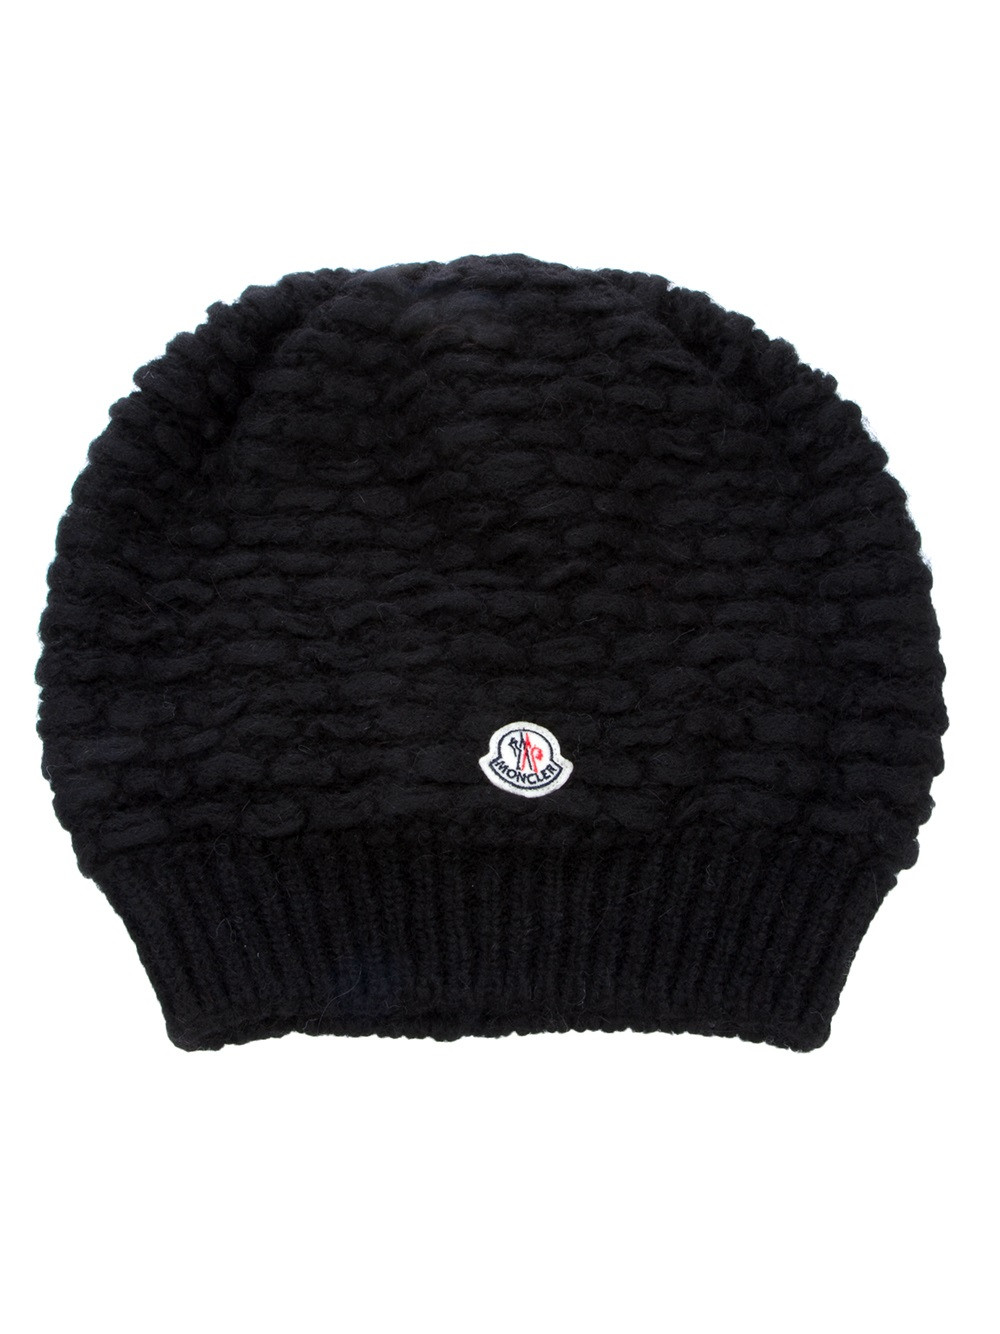 Awesome Moncler Slouchy Beanie Hat In Black Black Slouchy Beanie Of Great 40 Models Black Slouchy Beanie